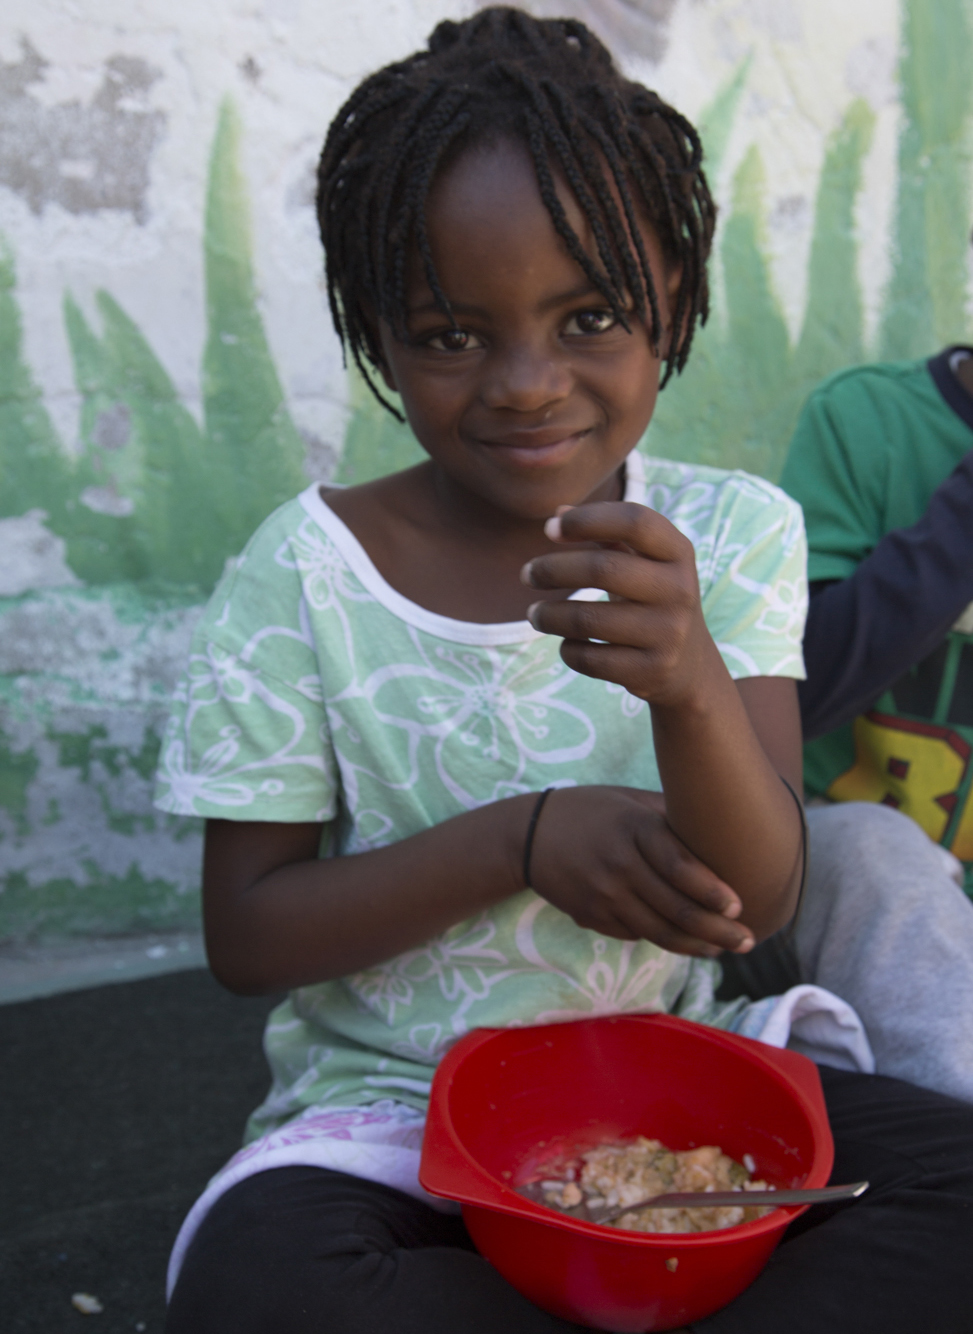 Image: Little girl in adverse poverty receiving a free meal